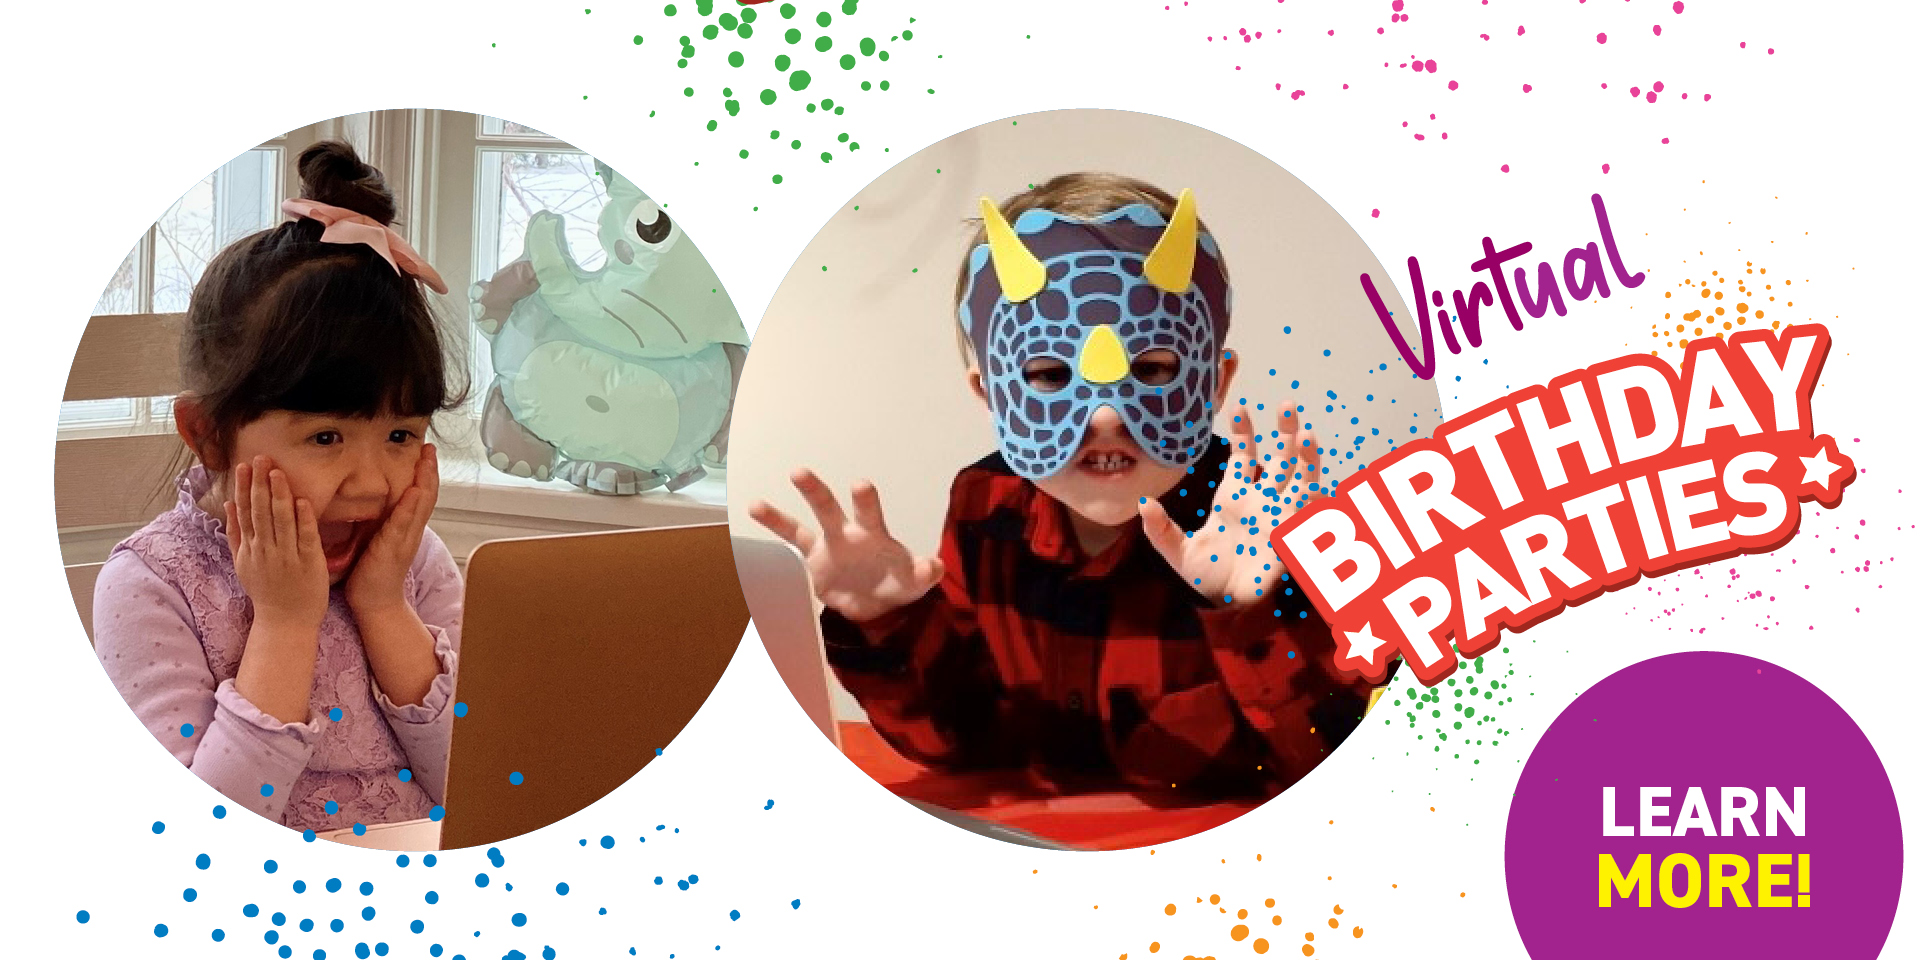 Two Happy kids having a Virtual Birthday Party - Click to learn more